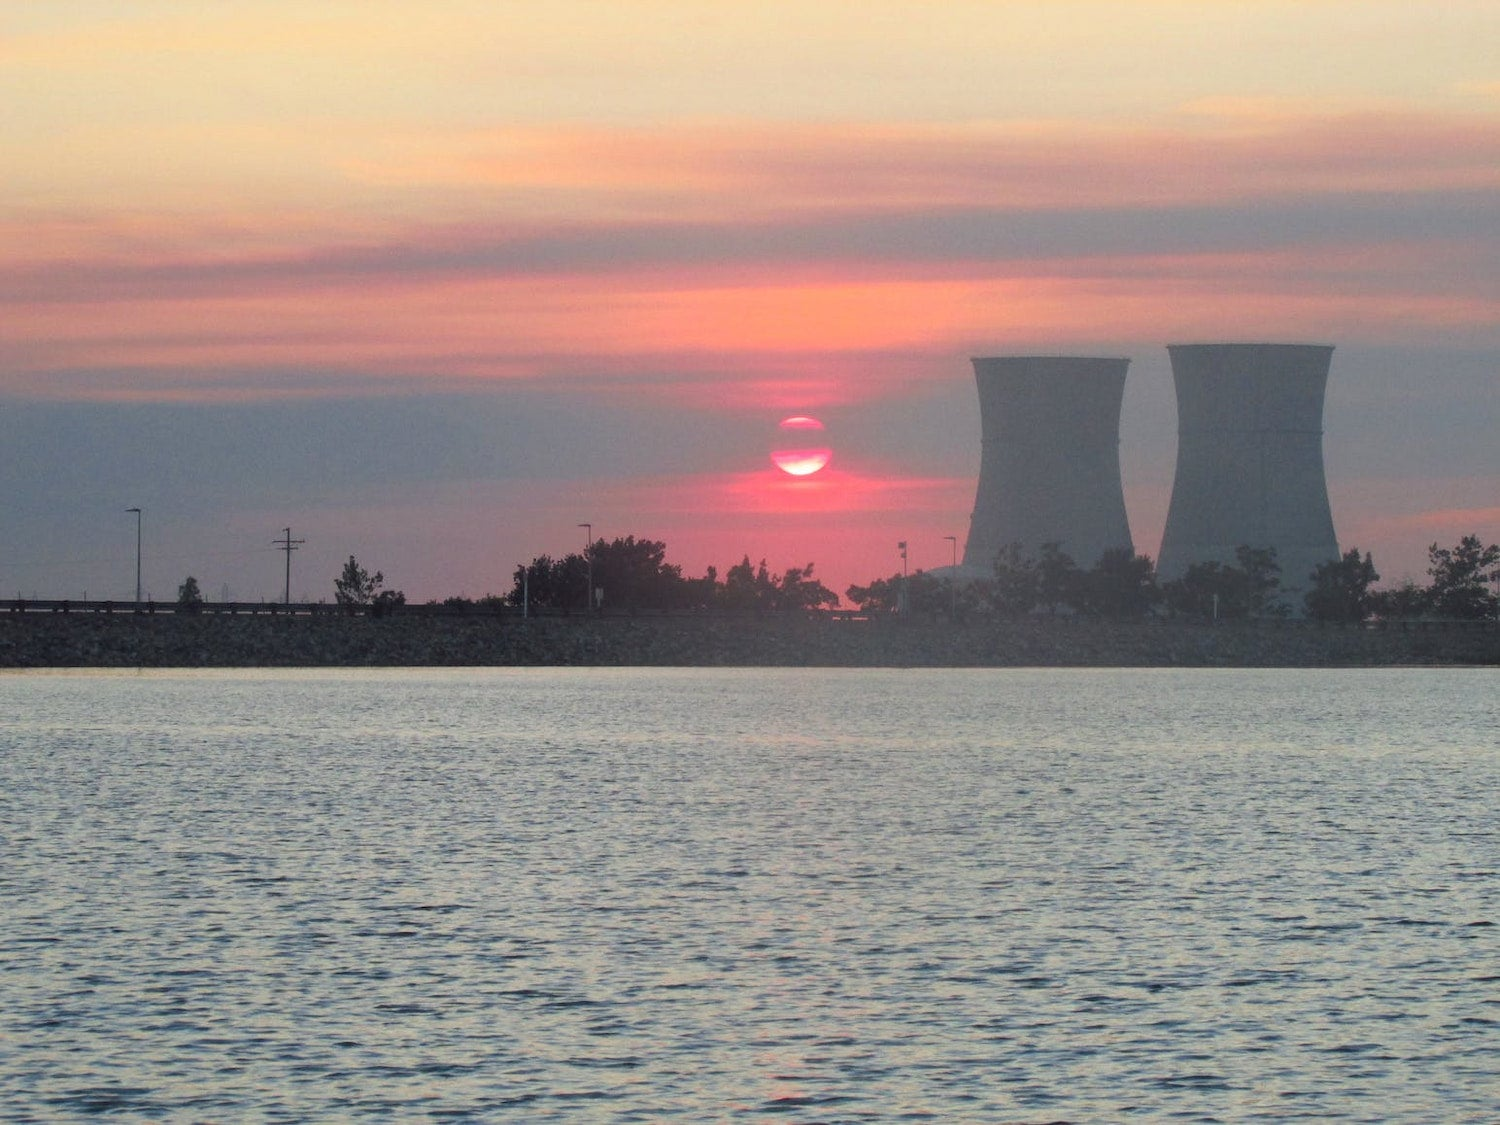 sunset over the water next to cooling towers